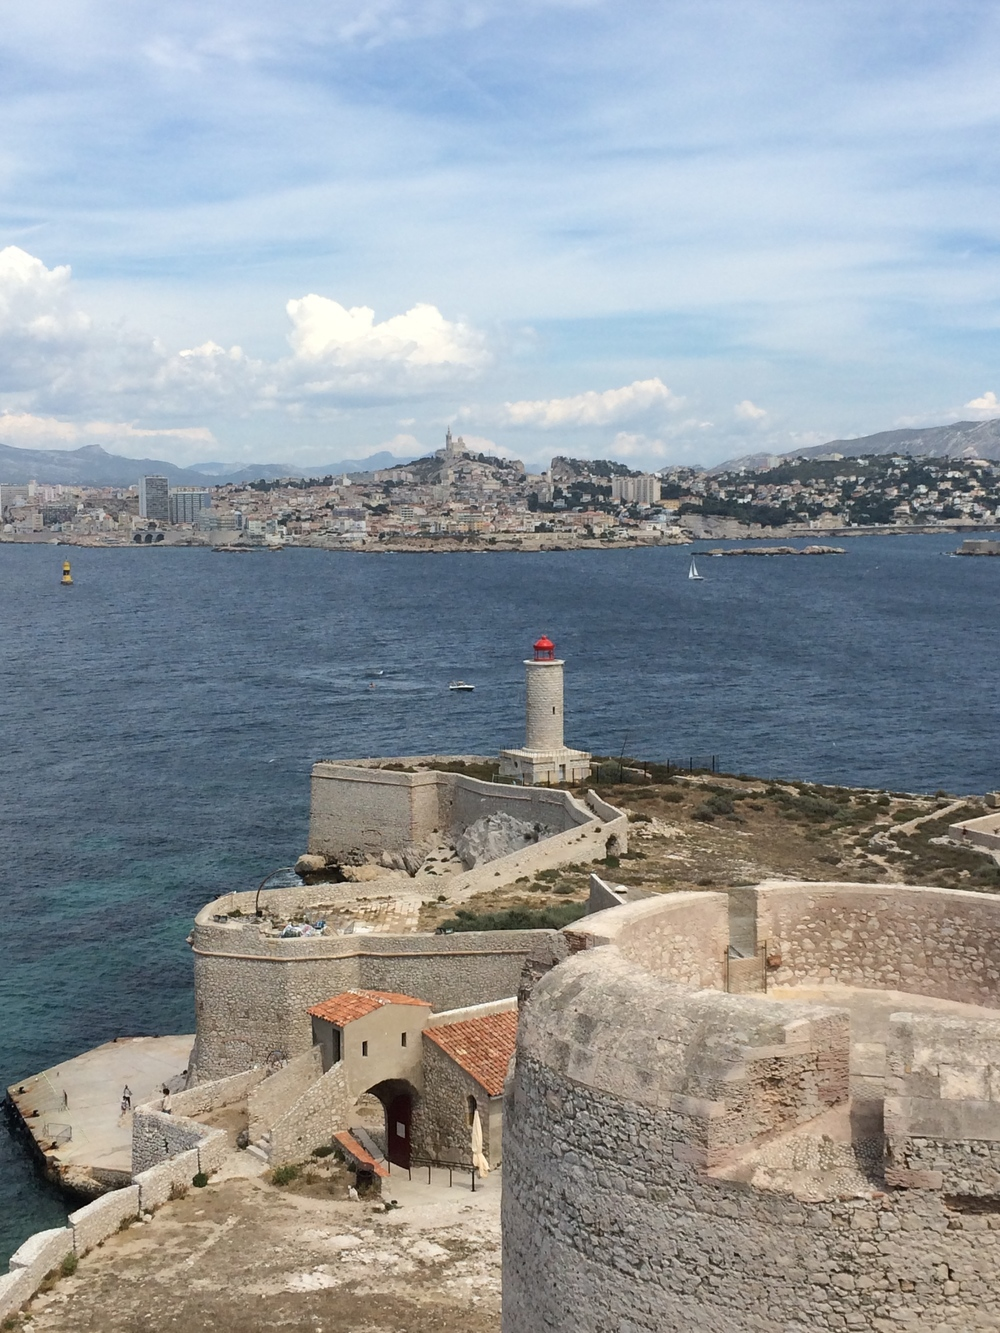 View from the top of Chateau d'If with Marseille in the background.